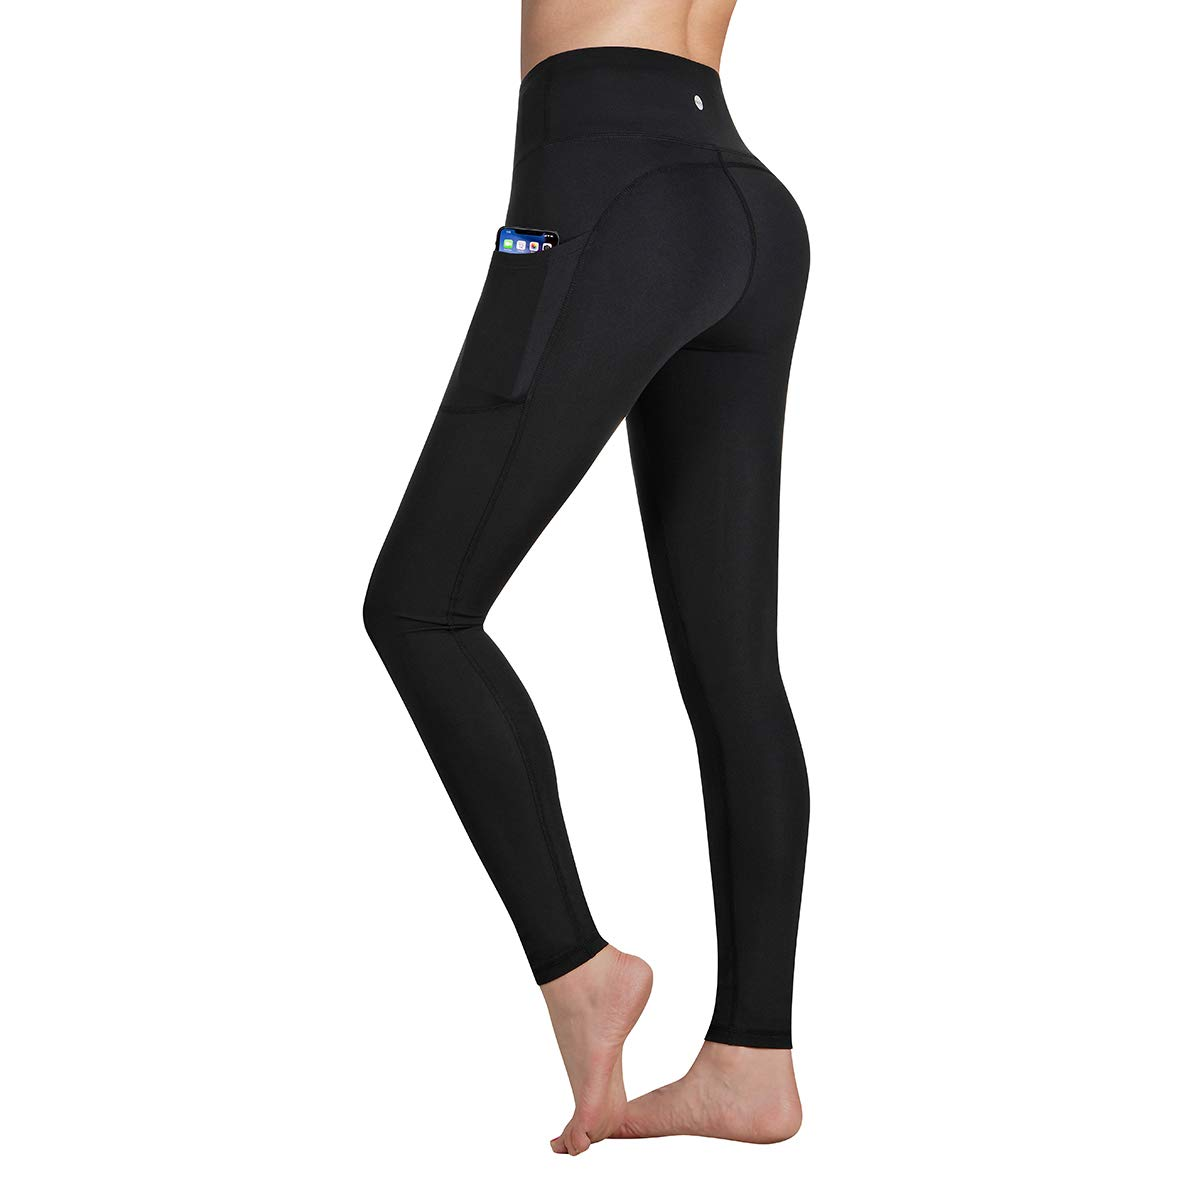 792ec08af6464 Occffy Yoga Pants for Women High Waist with Pockets Flex Leggings Tummy  Control Workout Running Tights DS166